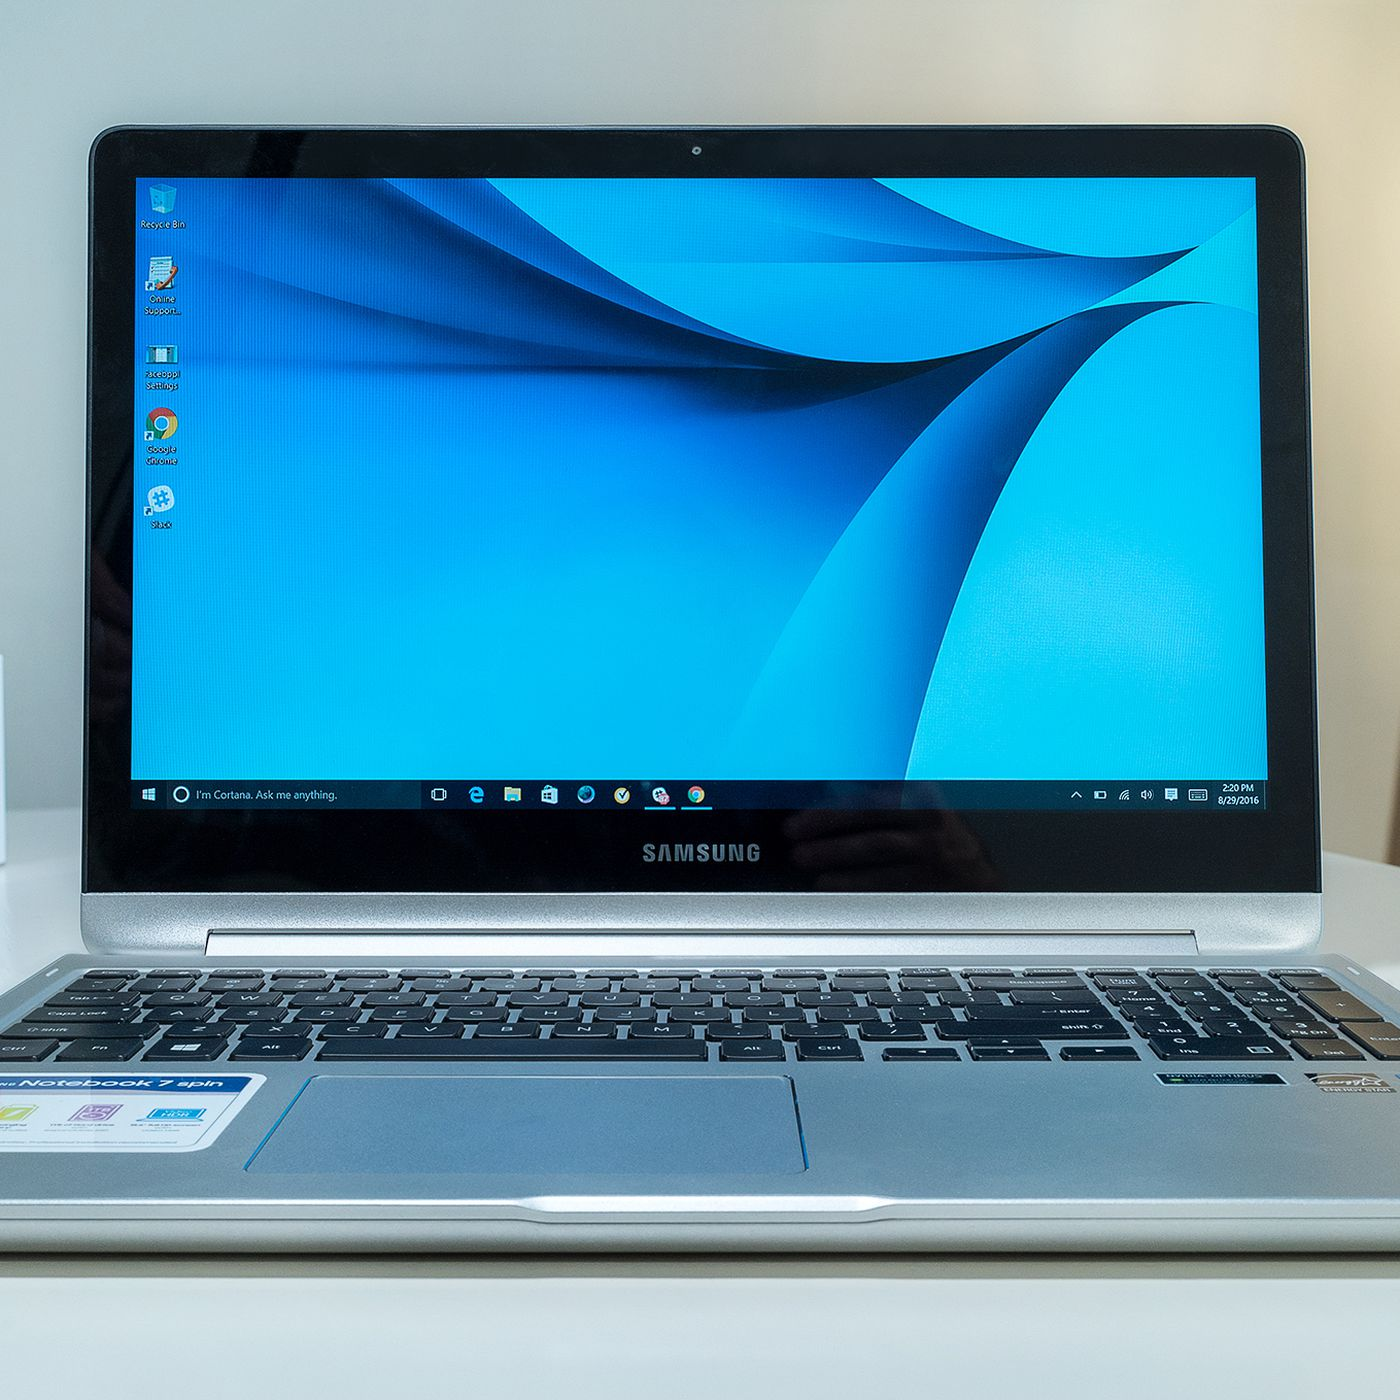 Samsung Notebook 7 Spin review: Pay for the power, not for